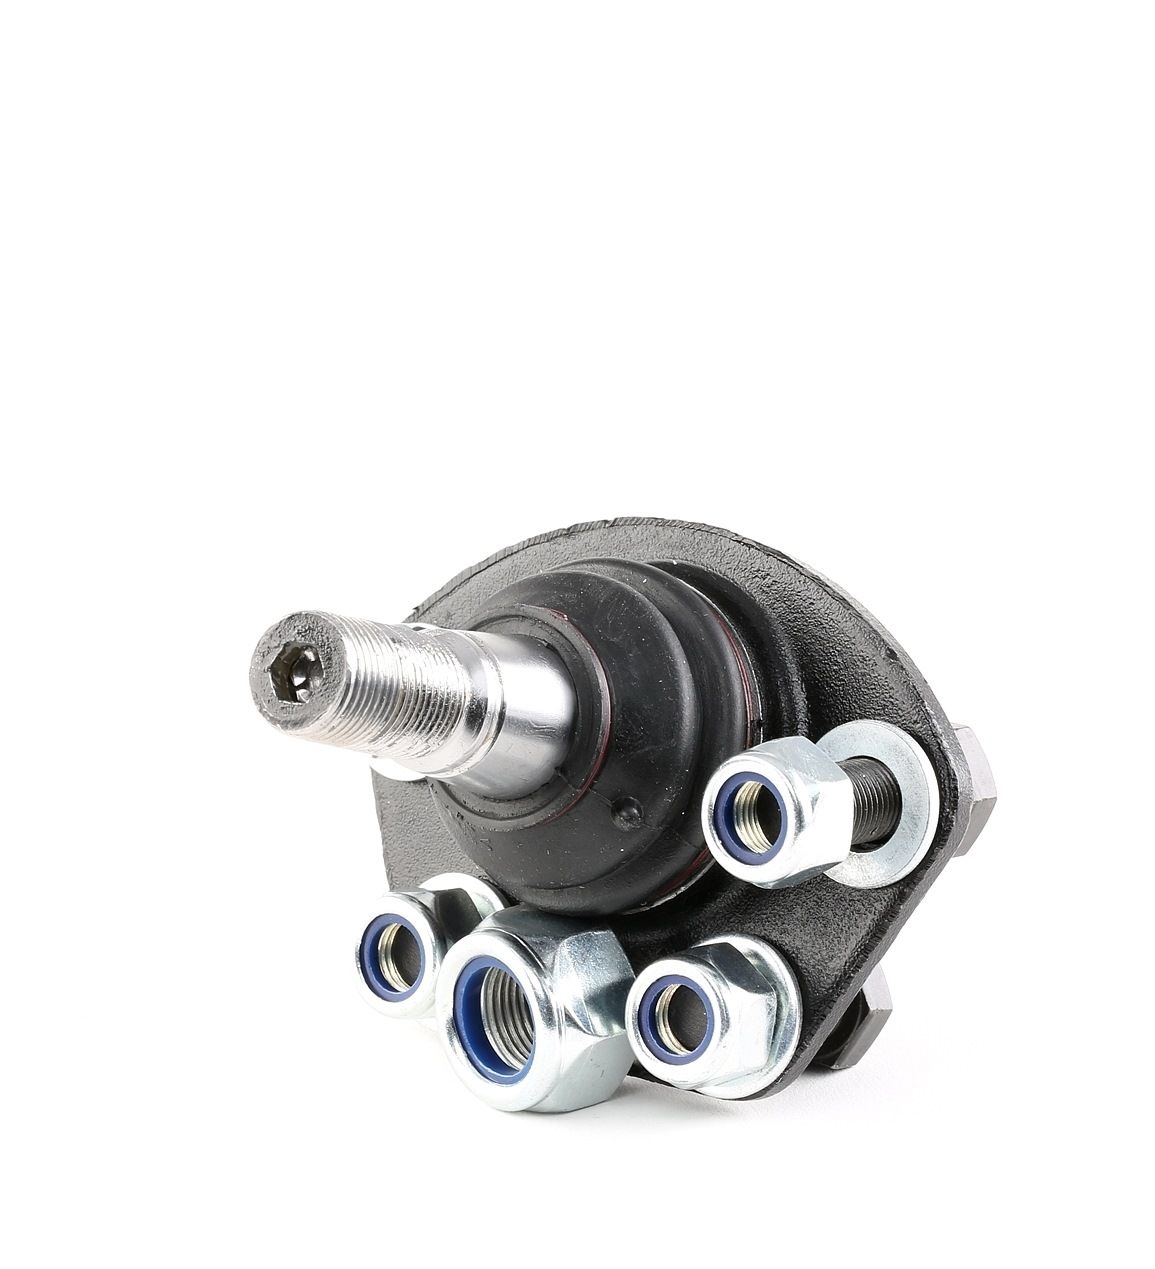 Image of MONROE Ball Joint FIAT,CITROËN,PEUGEOT L10520 364054,1300473080,1331641080 Suspension Ball Joint,Support-/Steering Link 364054